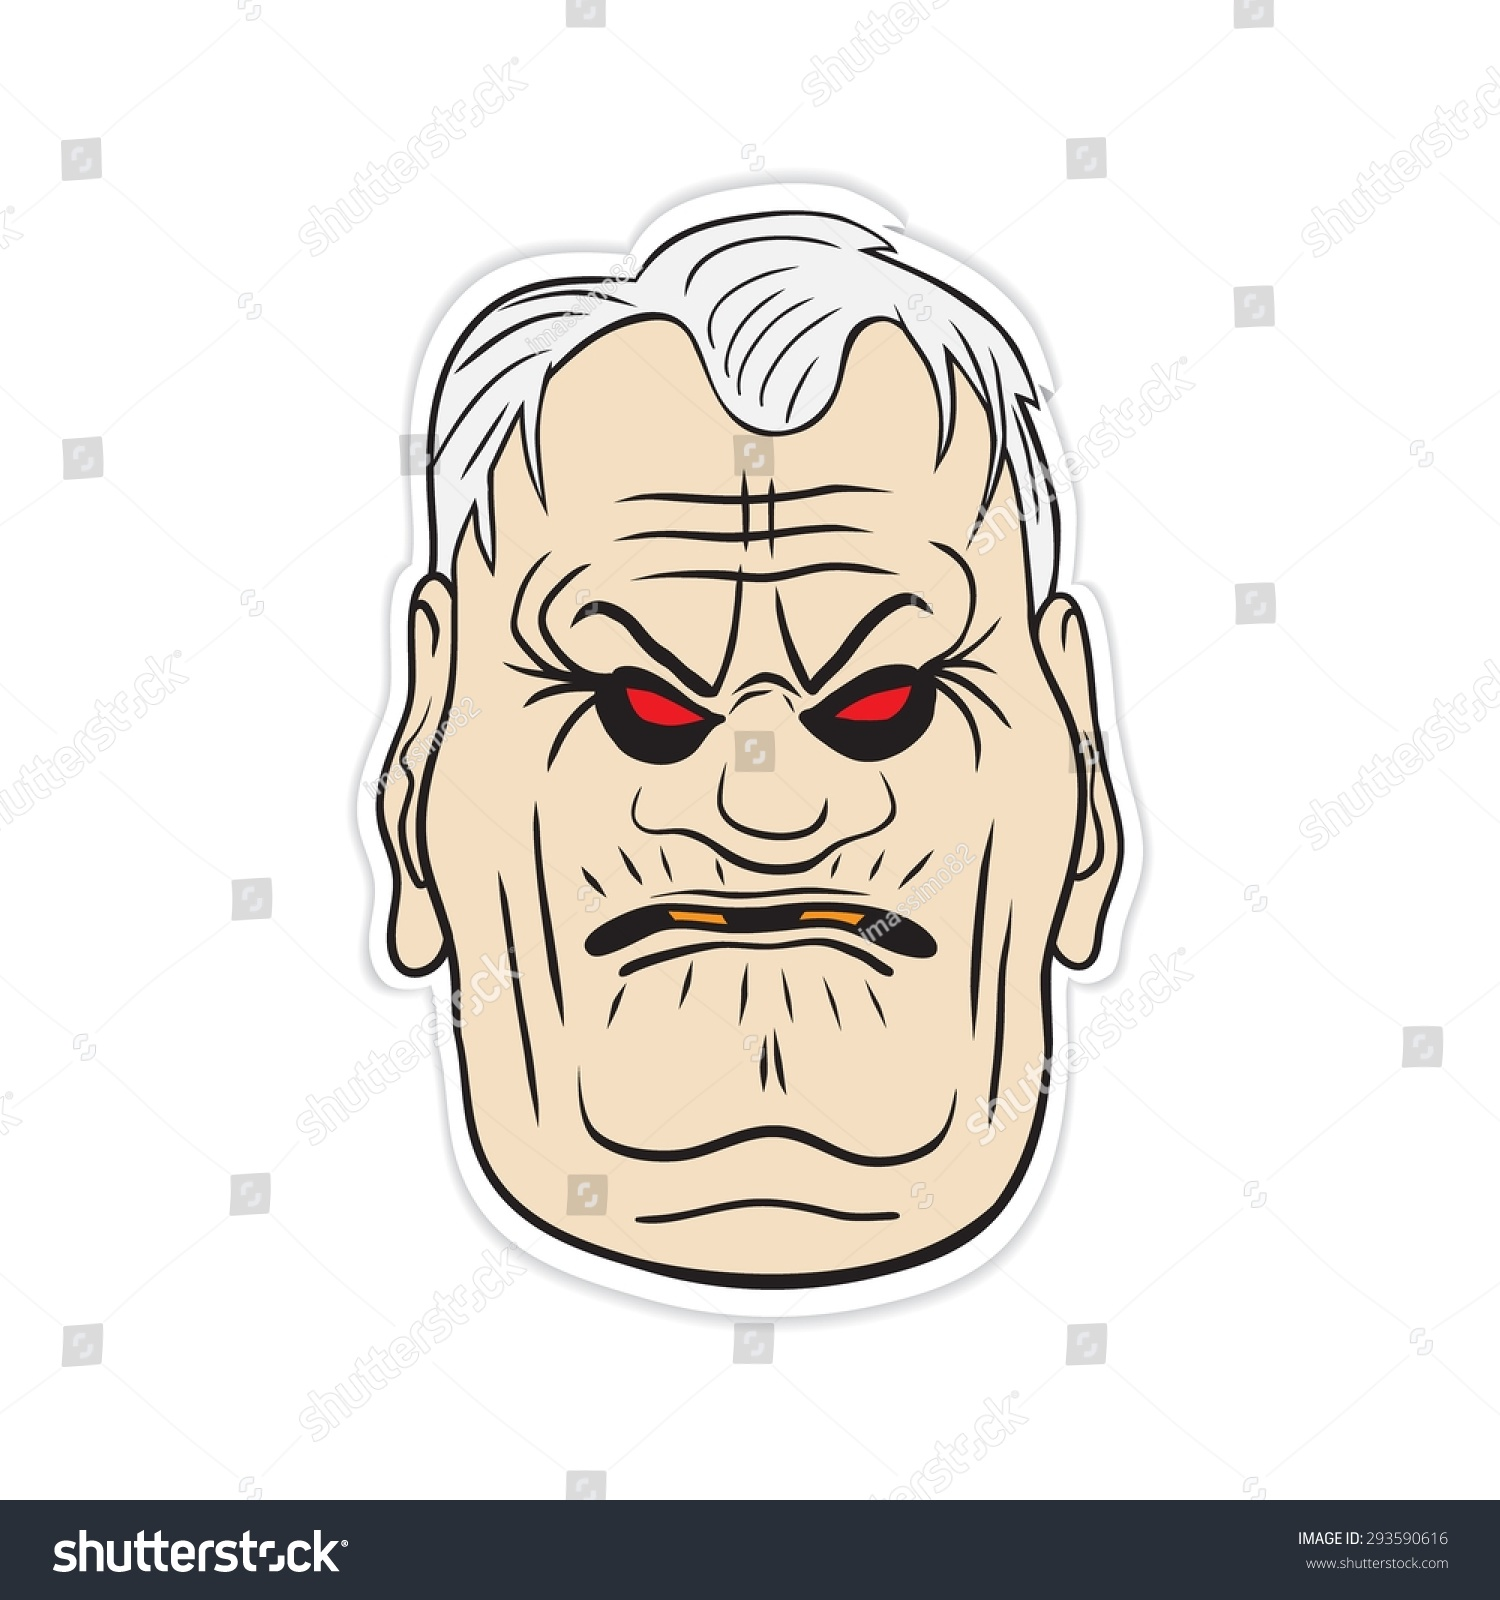 Cartoon old man face hand drawn vector sticker on a white background